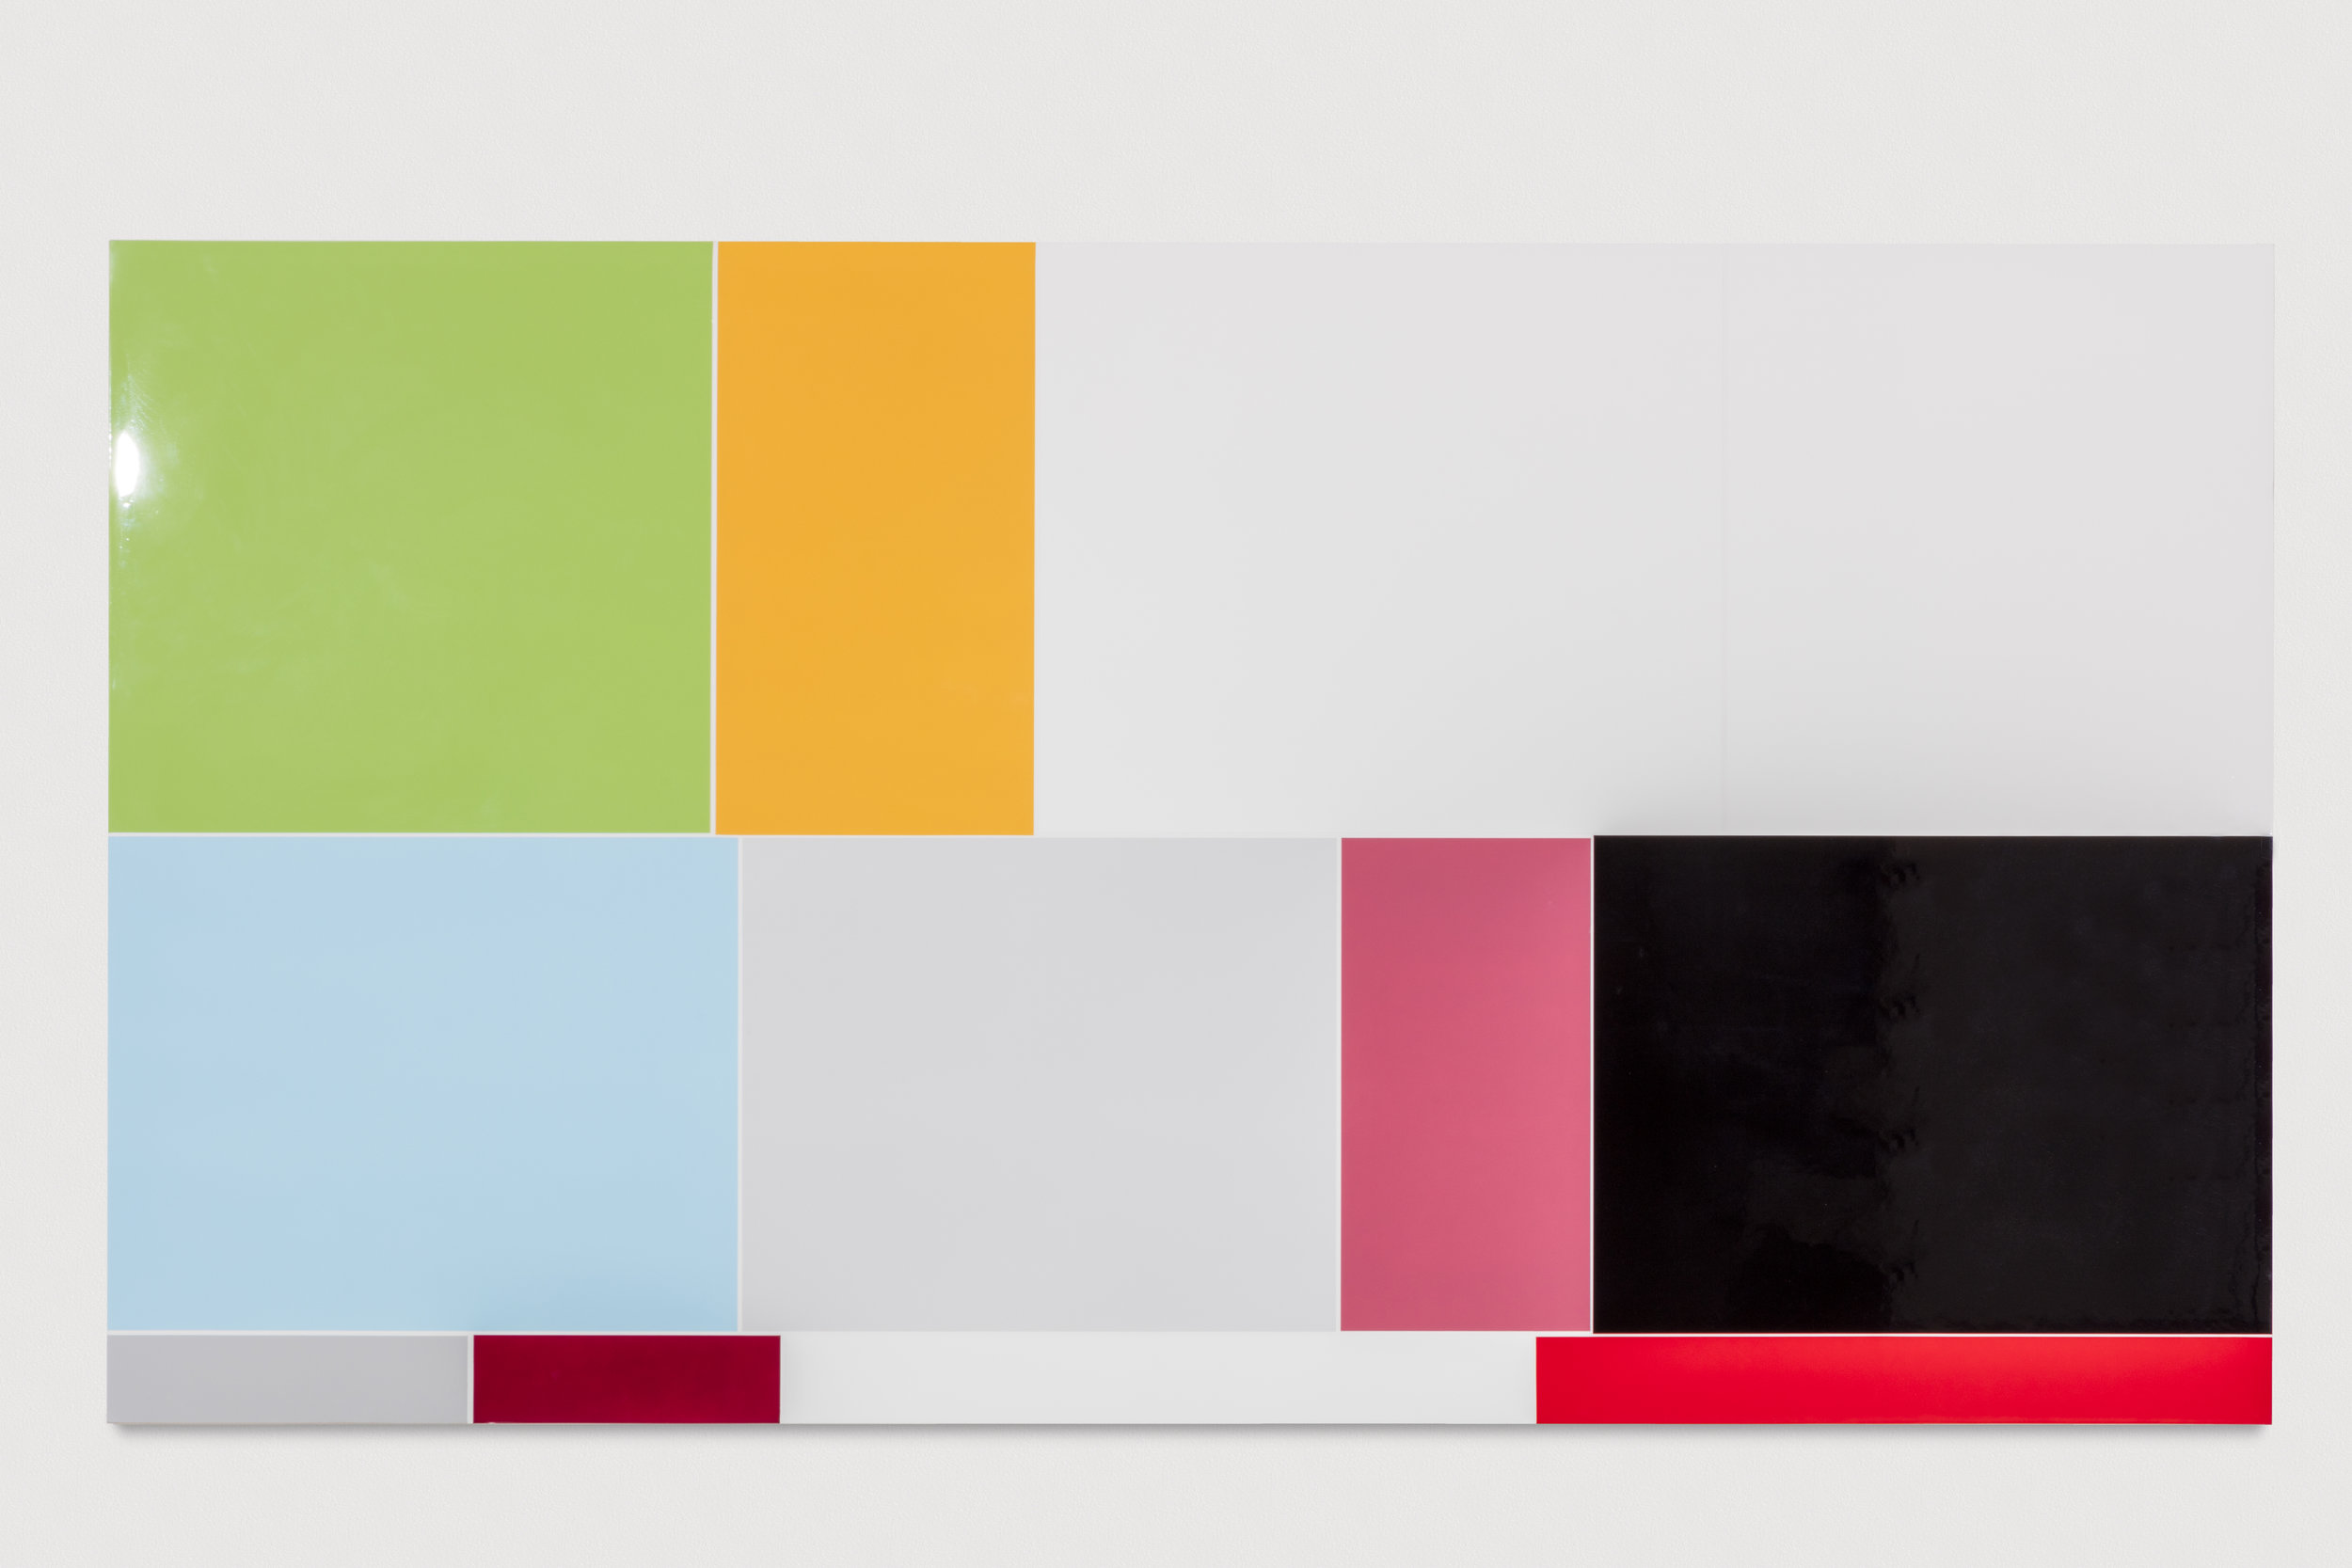 Rg. 73, Rage, (Feelings and Emotions Chart), Polished urethane on canvas, 58 X 121 inches